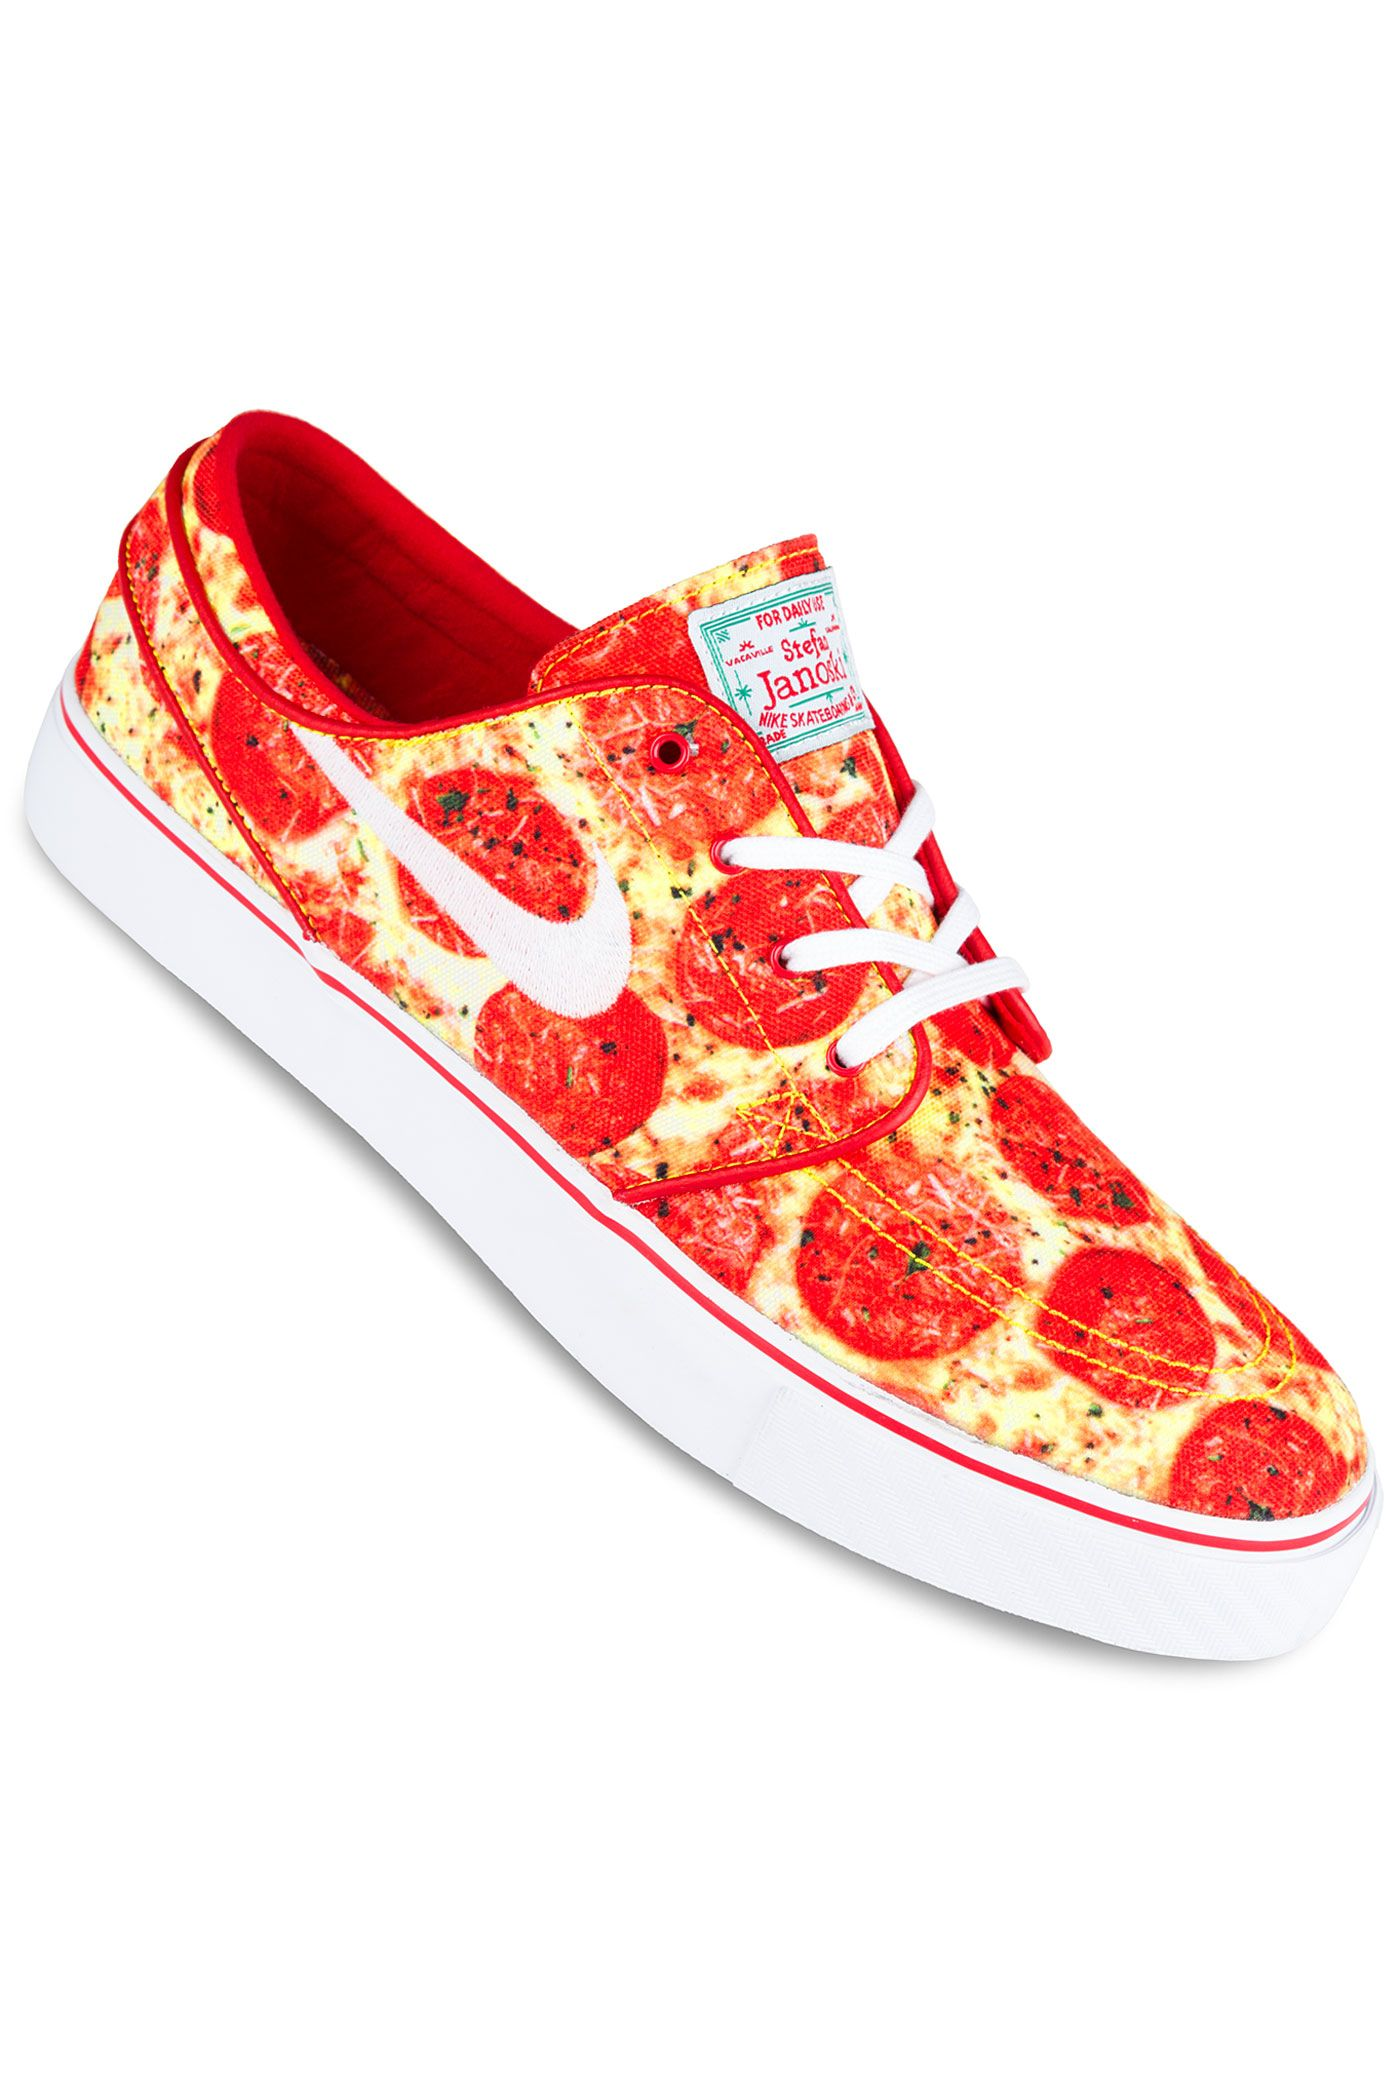 official photos f0da2 8d34c Nike SB x Skate Mental Zoom Stefan Janoski QS Schuh (pepperoni pizza)